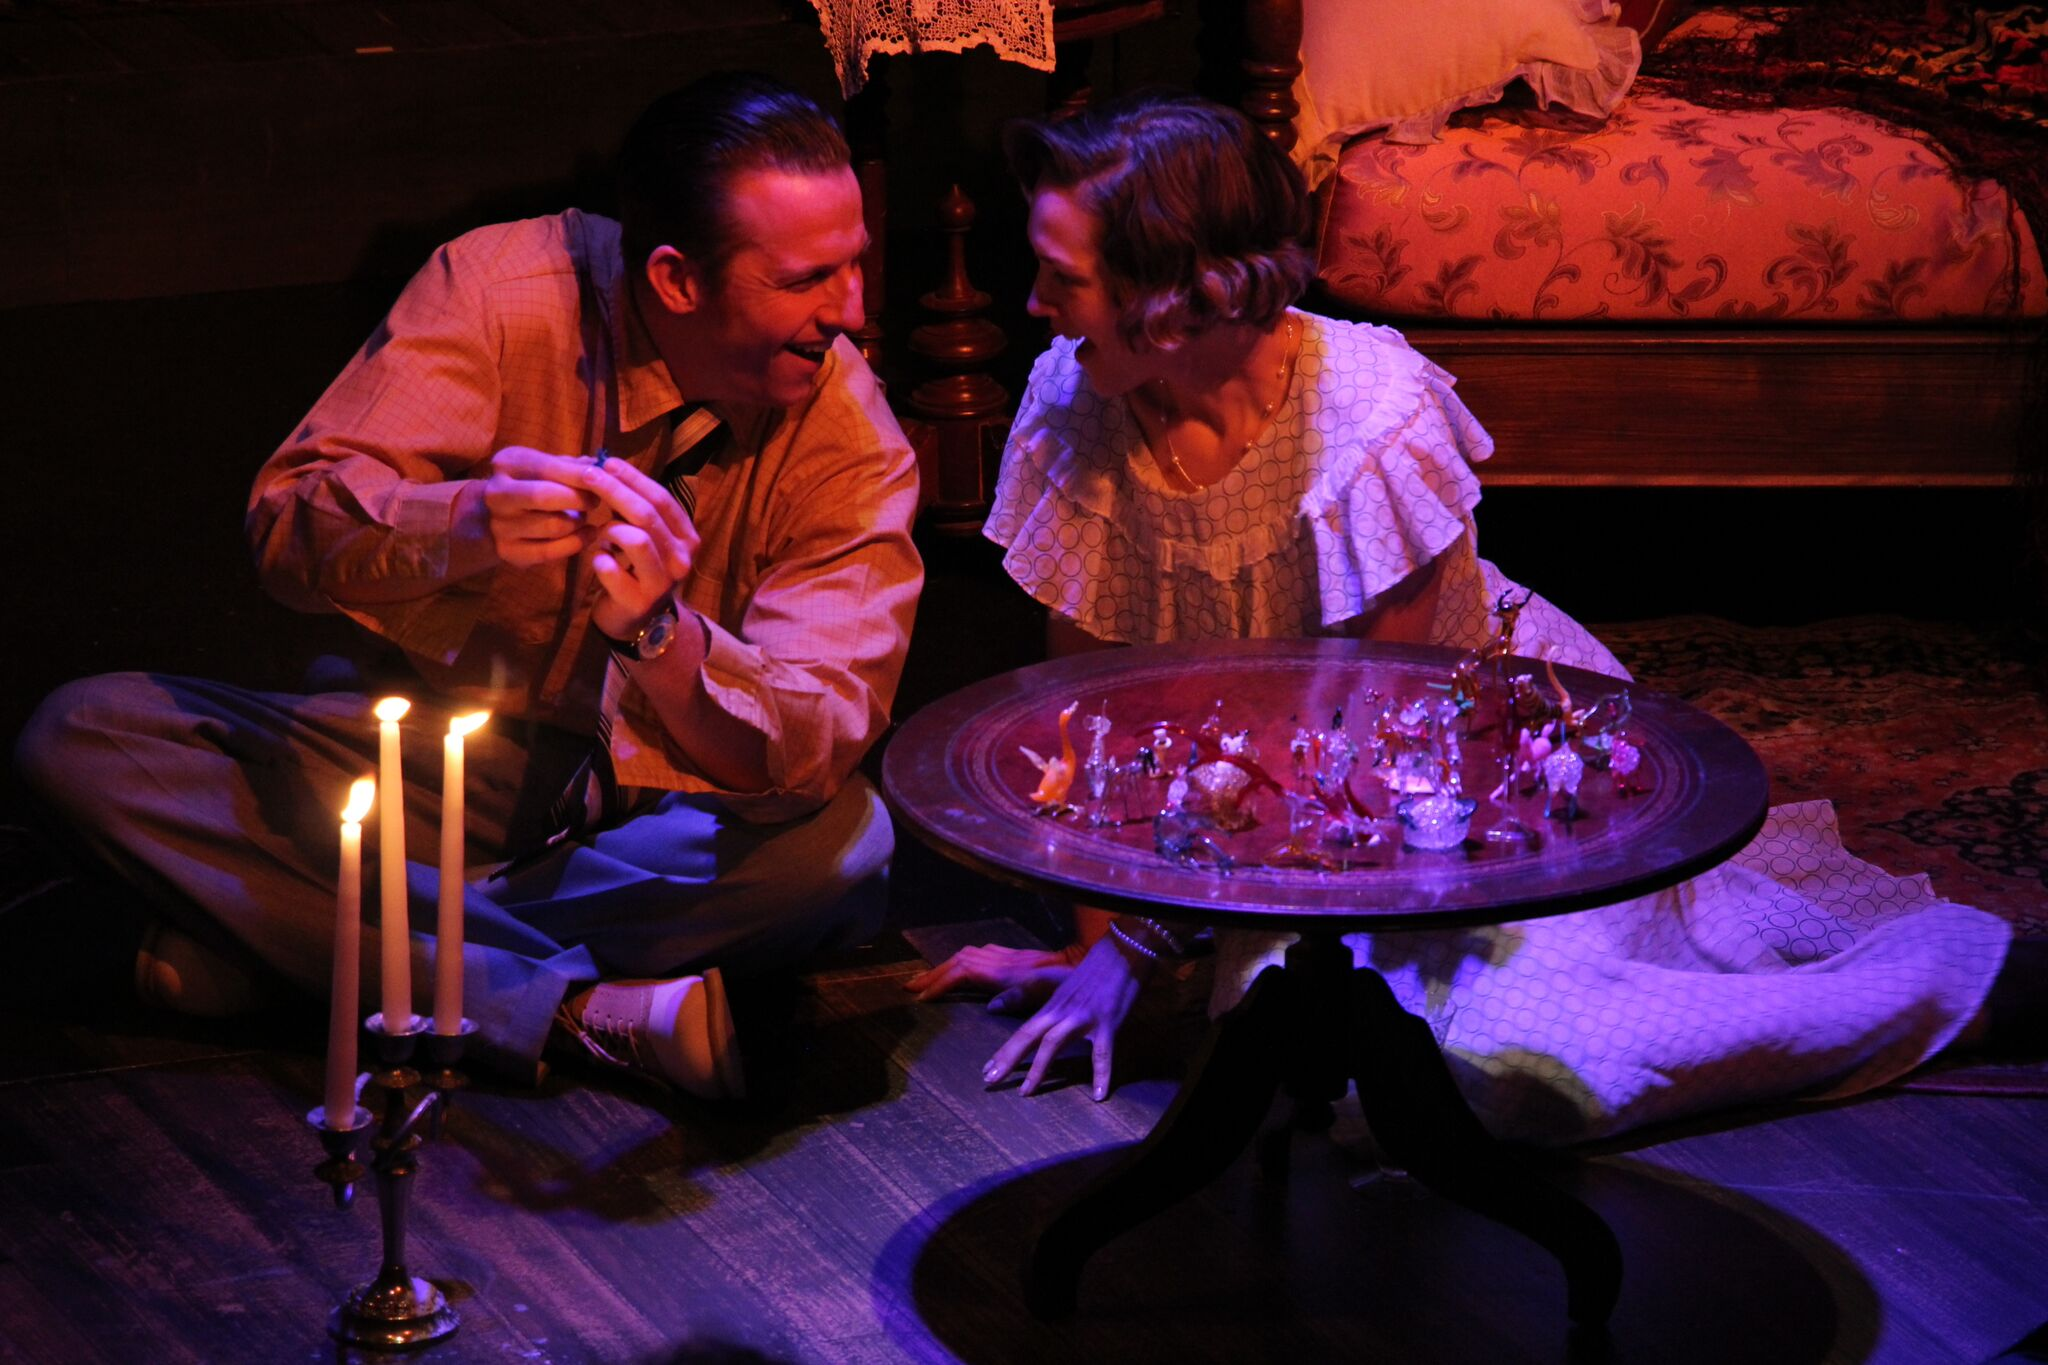 glass menagerie 2 Menagerie sunday, april 14, 2019 2:00pm  tennessee williams' the glass  menagerie is one of the greatest american classics of the 20th century reality.